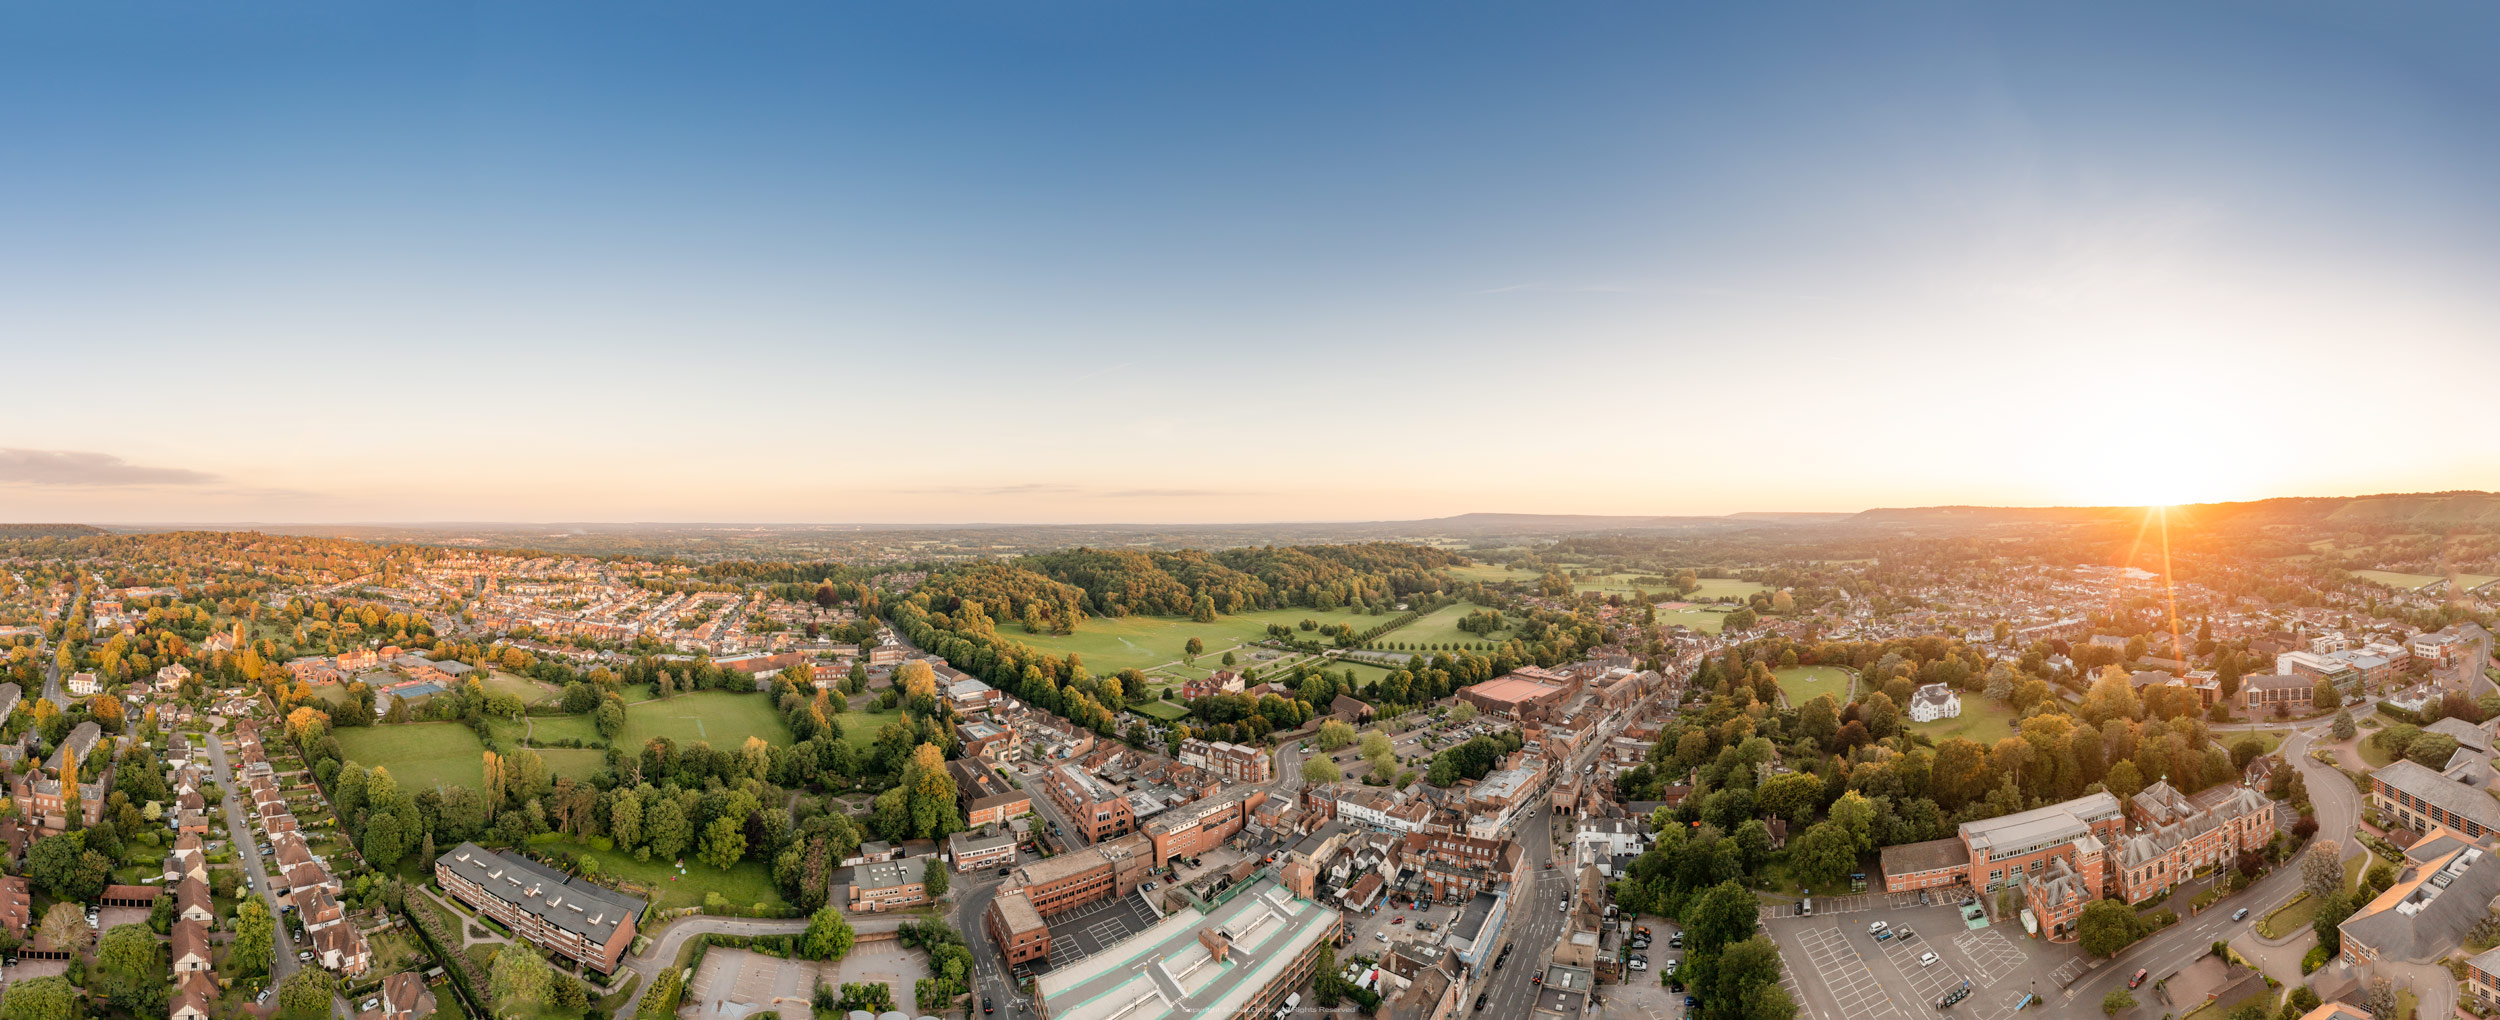 Drone Reigate Town Centre from North East